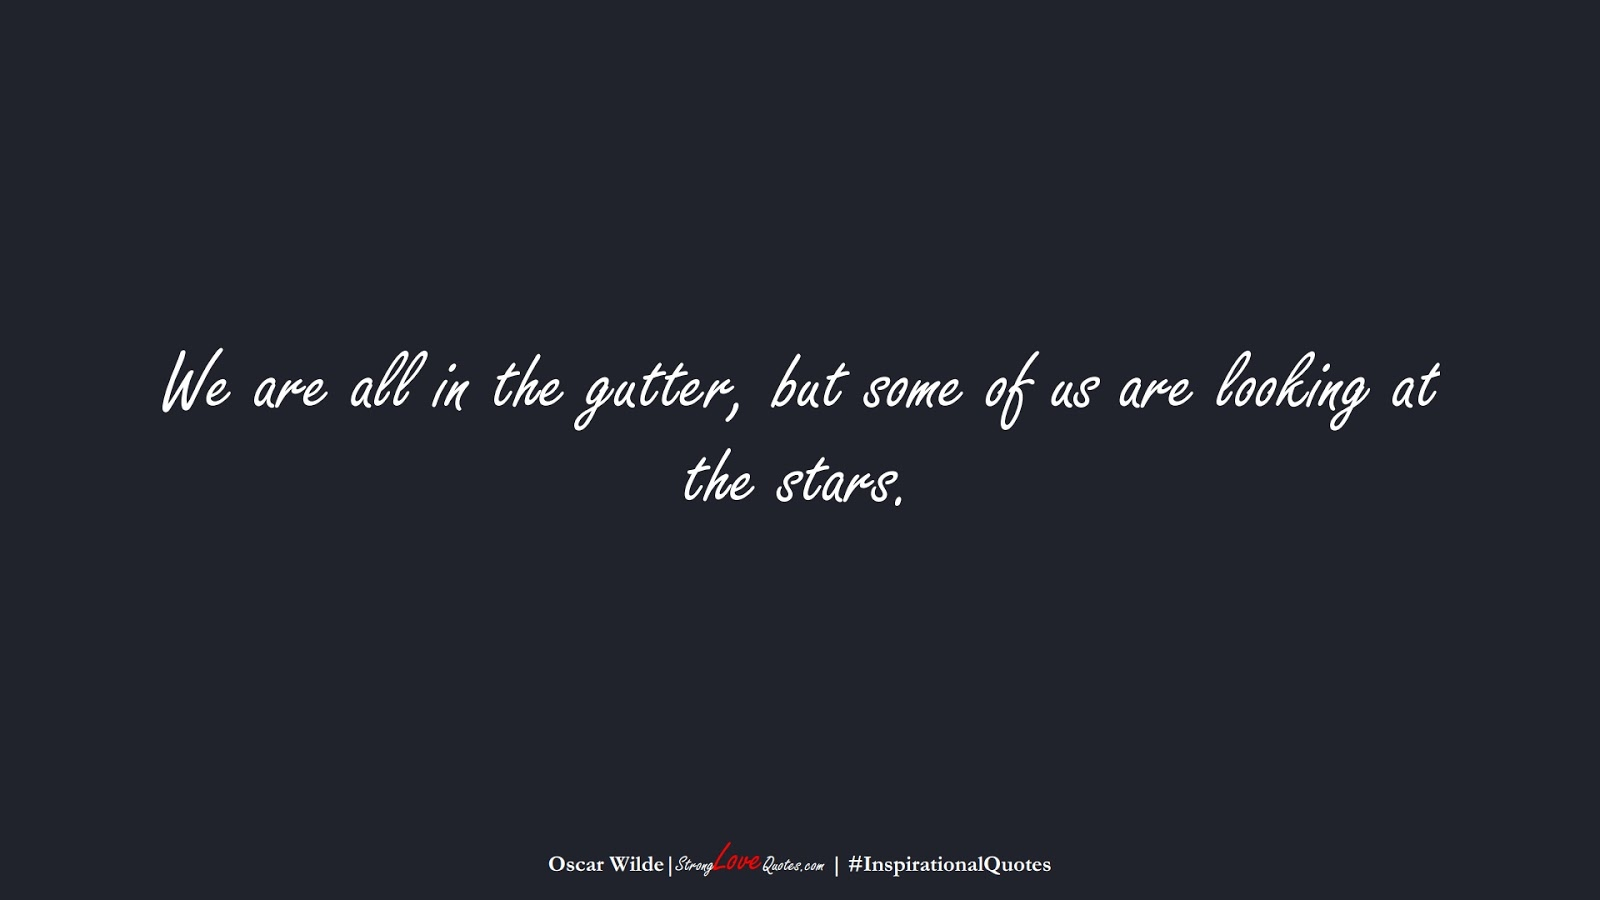 We are all in the gutter, but some of us are looking at the stars. (Oscar Wilde);  #InspirationalQuotes